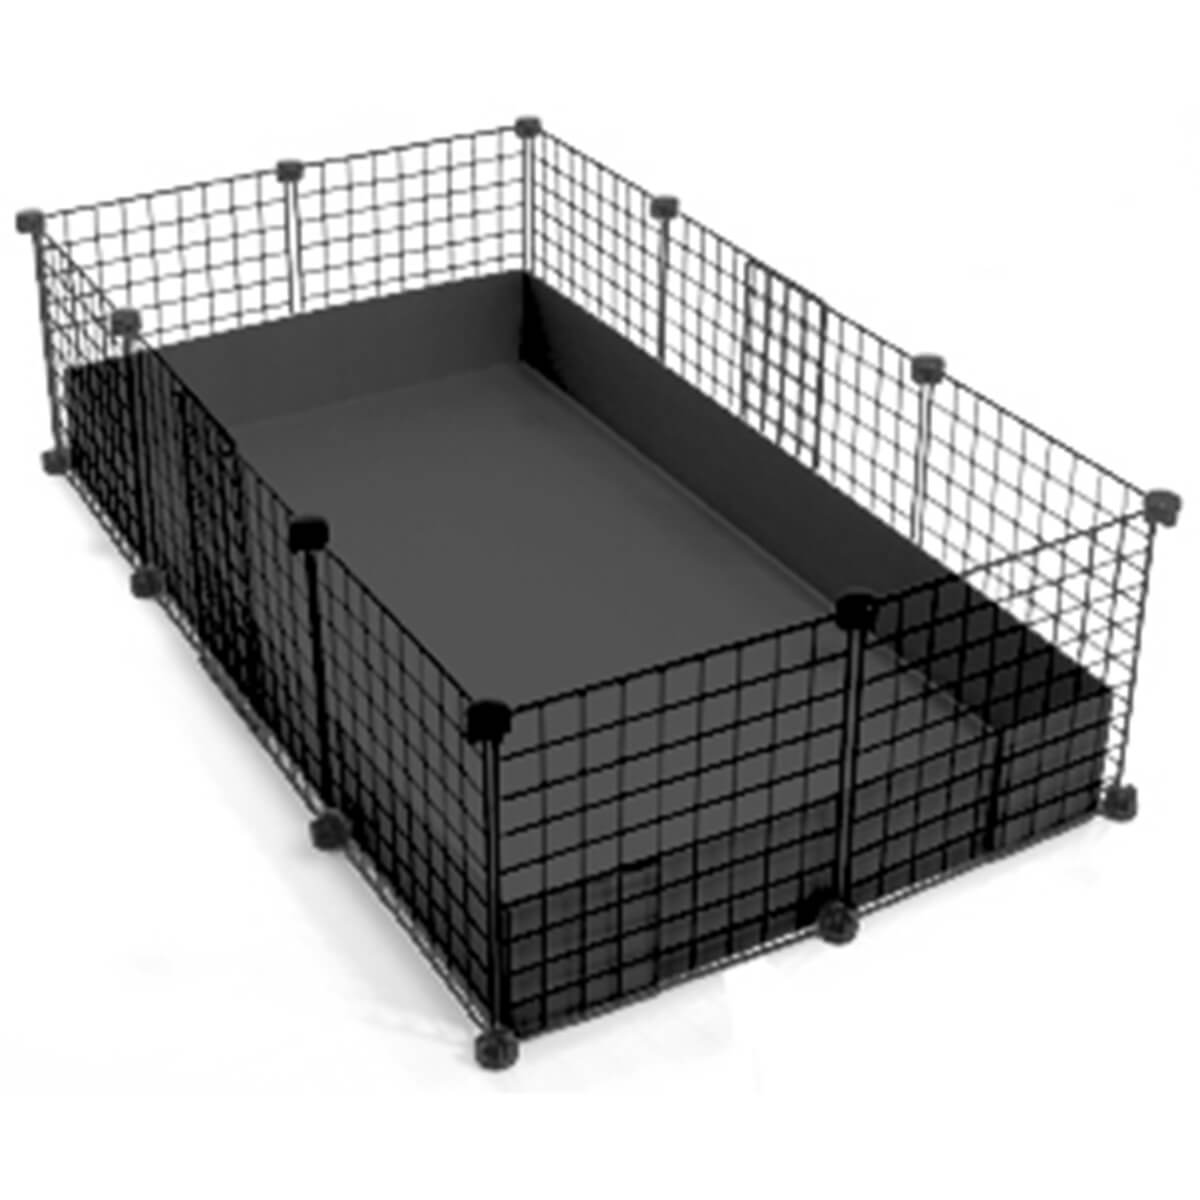 Perfect Medium (2x3.5 Grids) Cage - Standard Cages - Cagetopia PN22